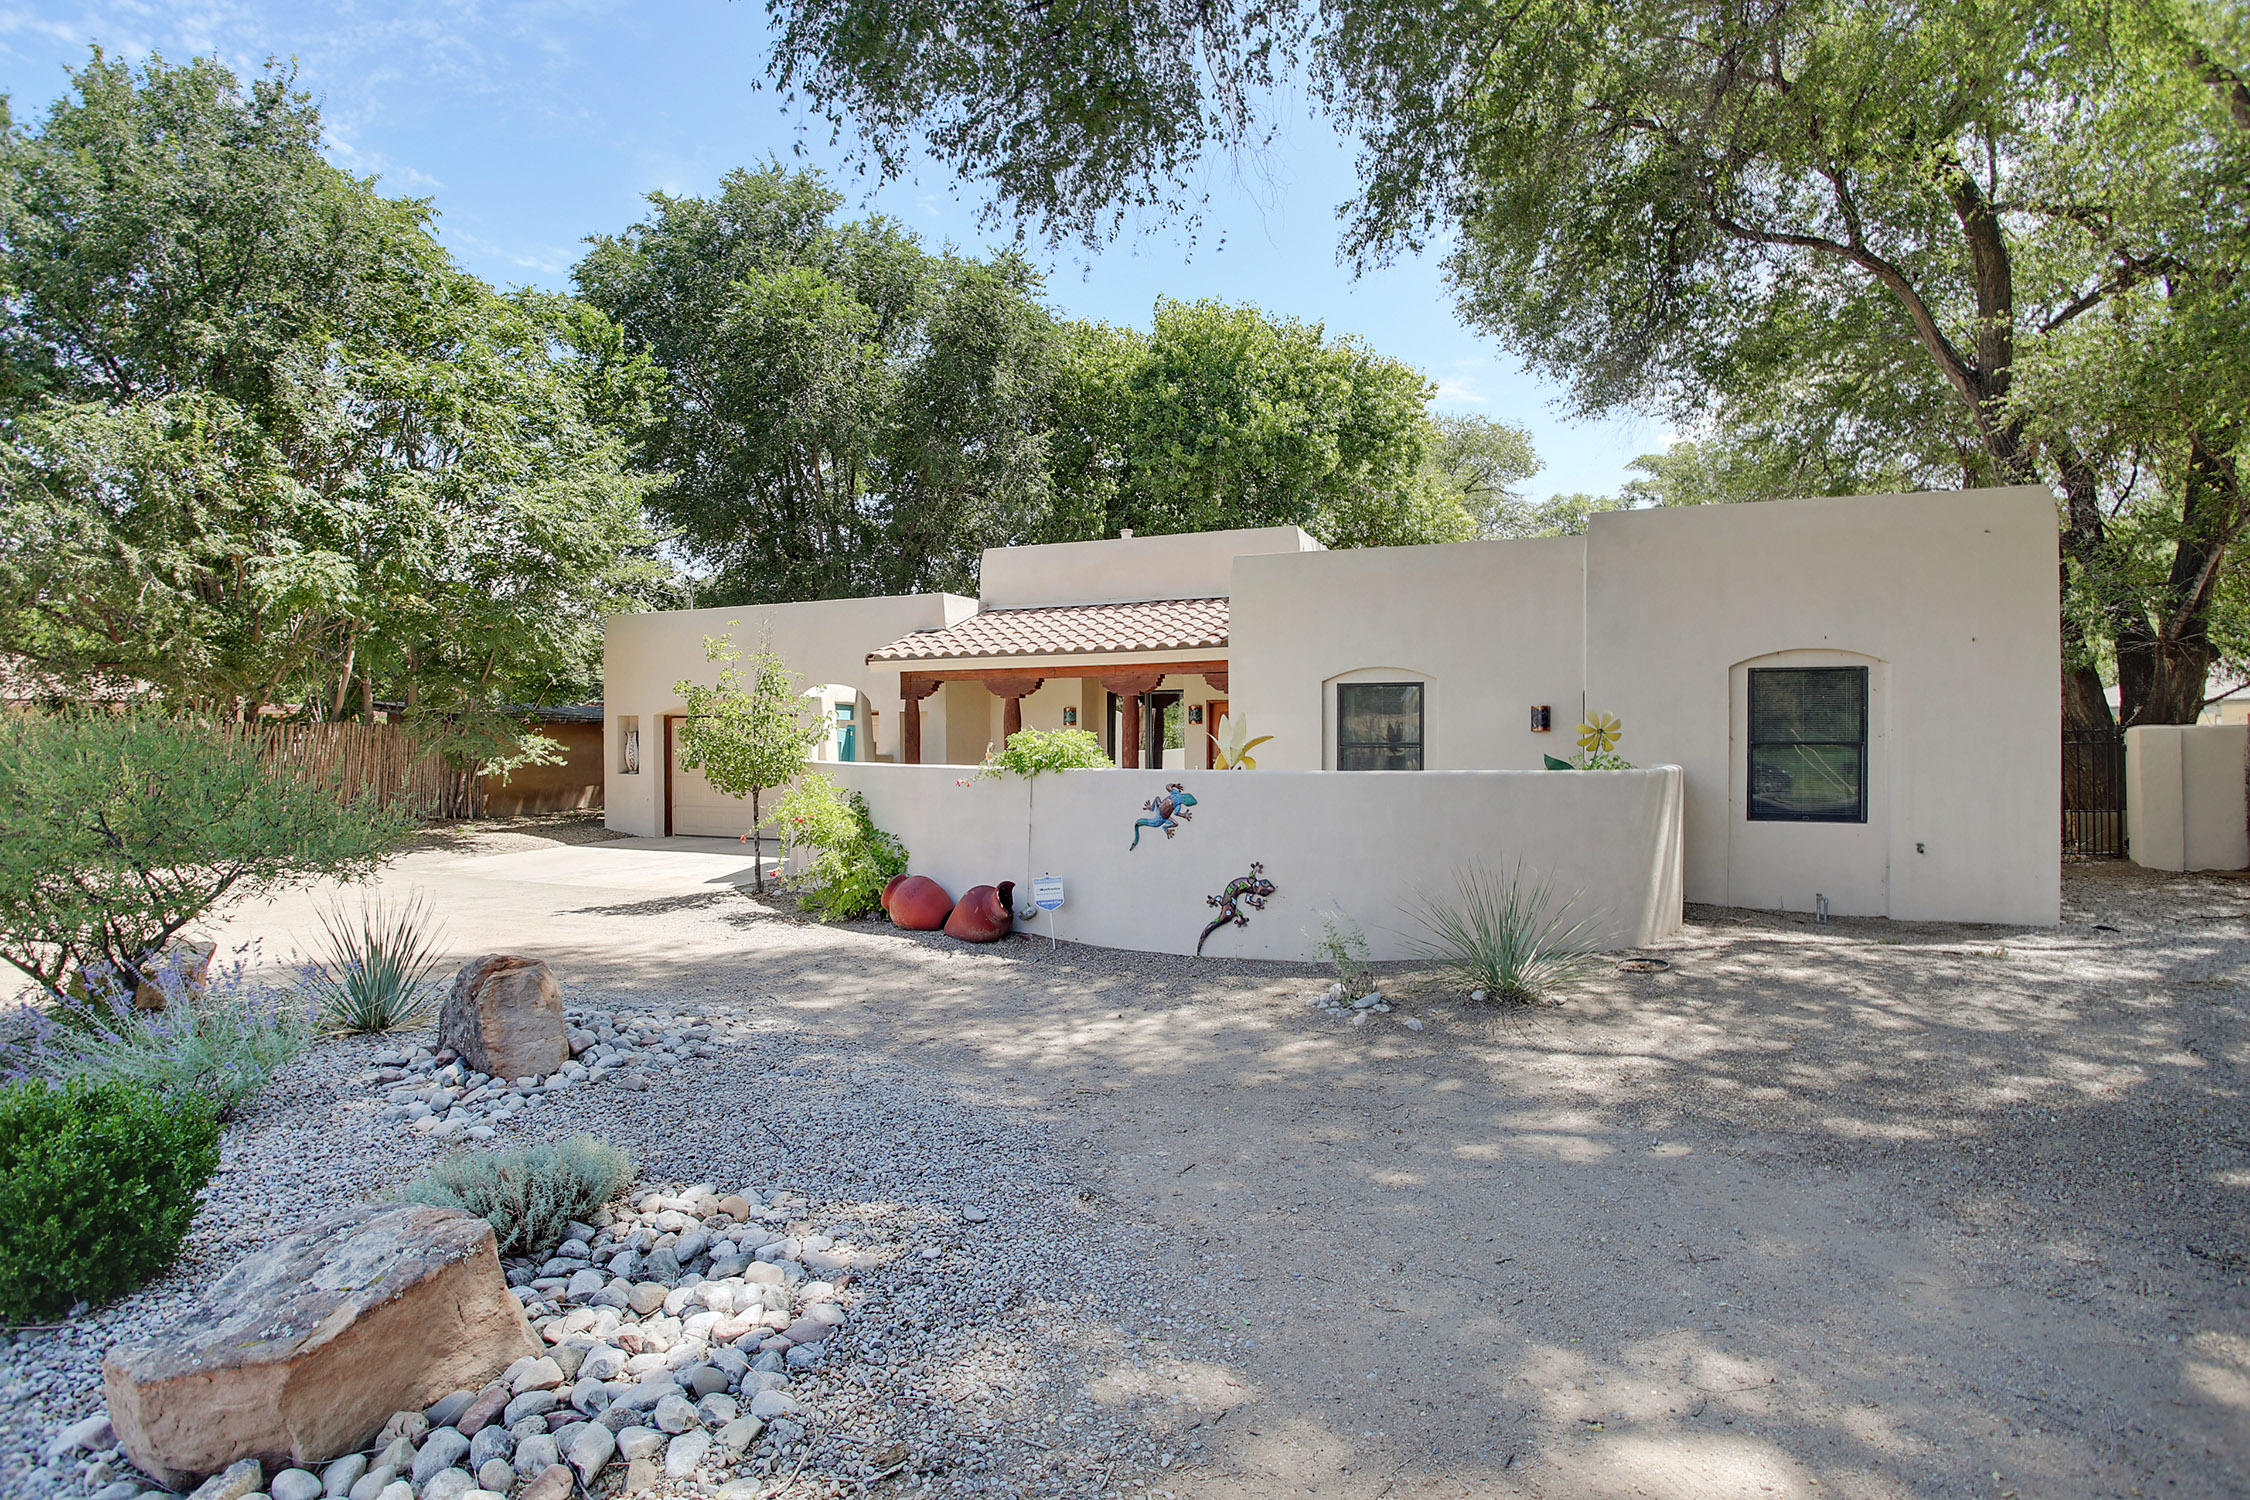 8416 Rio Grande Boulevard, Los Ranchos, NM 87114 - Los Ranchos, NM real estate listing